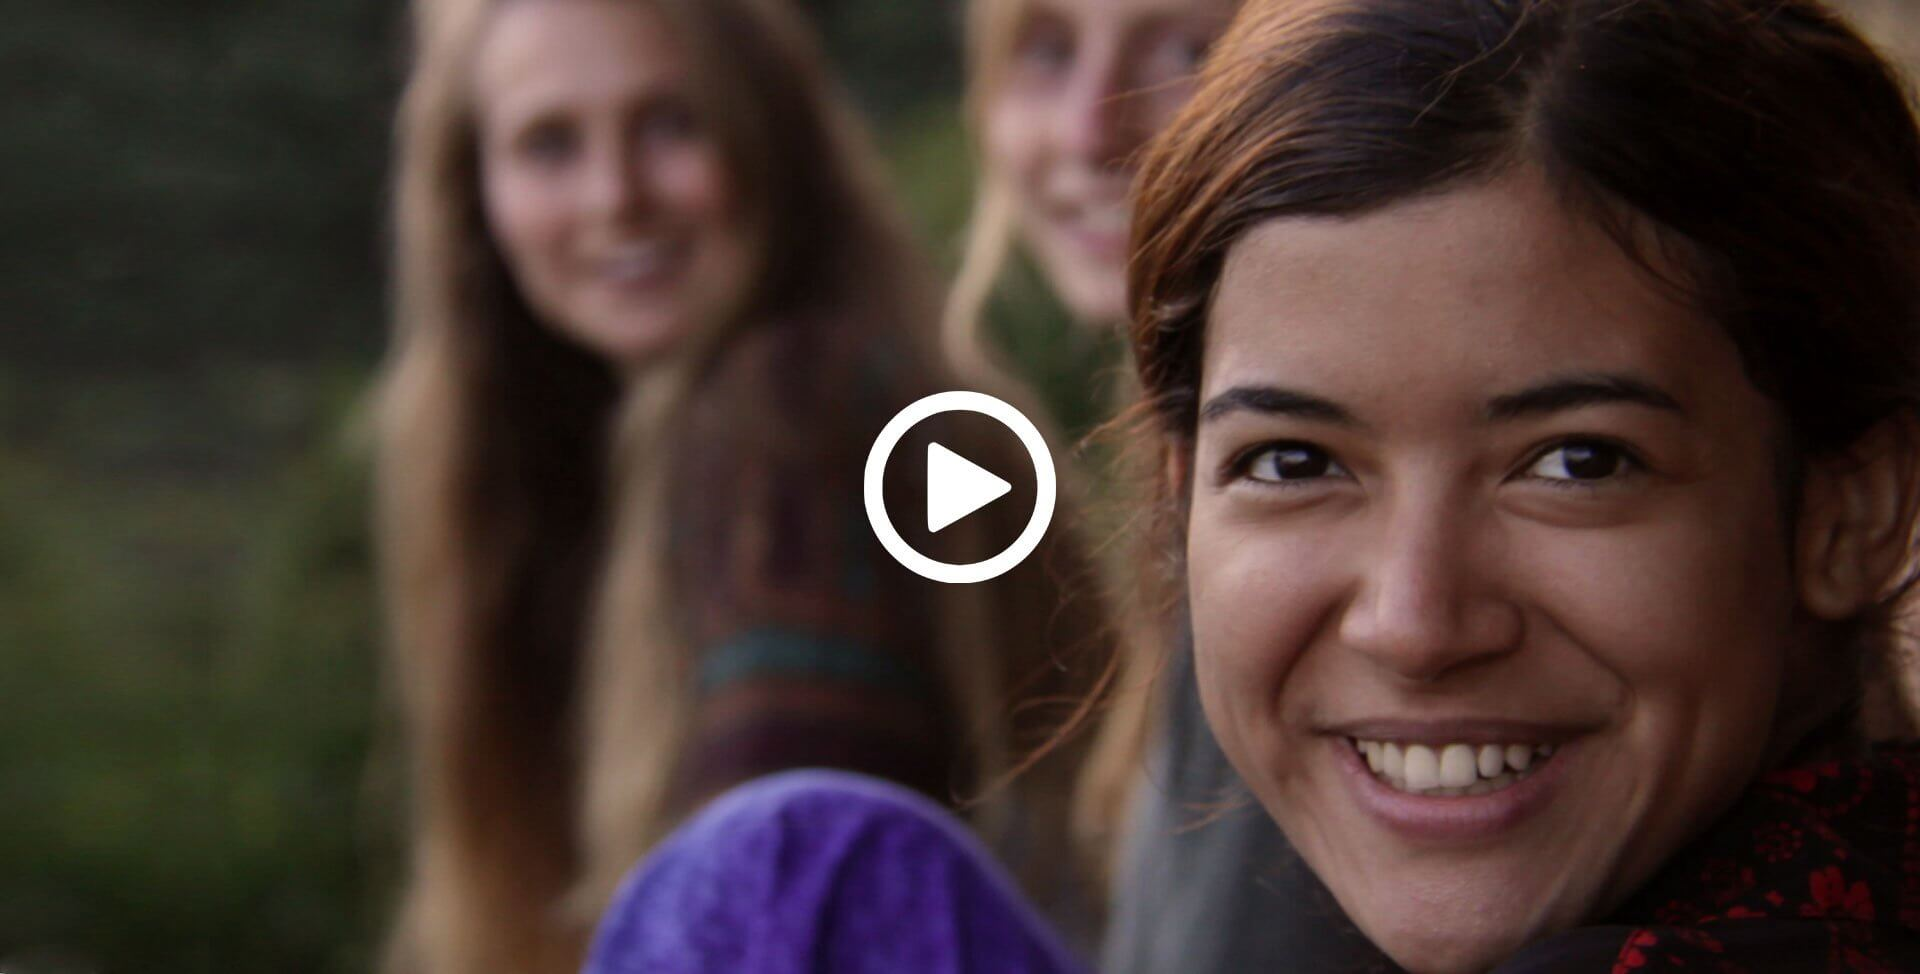 How do you live an A+ life using key principles for self-empowerment? awareness, acceptance, alignment, action and accountability? presented by The Gap Year Girls